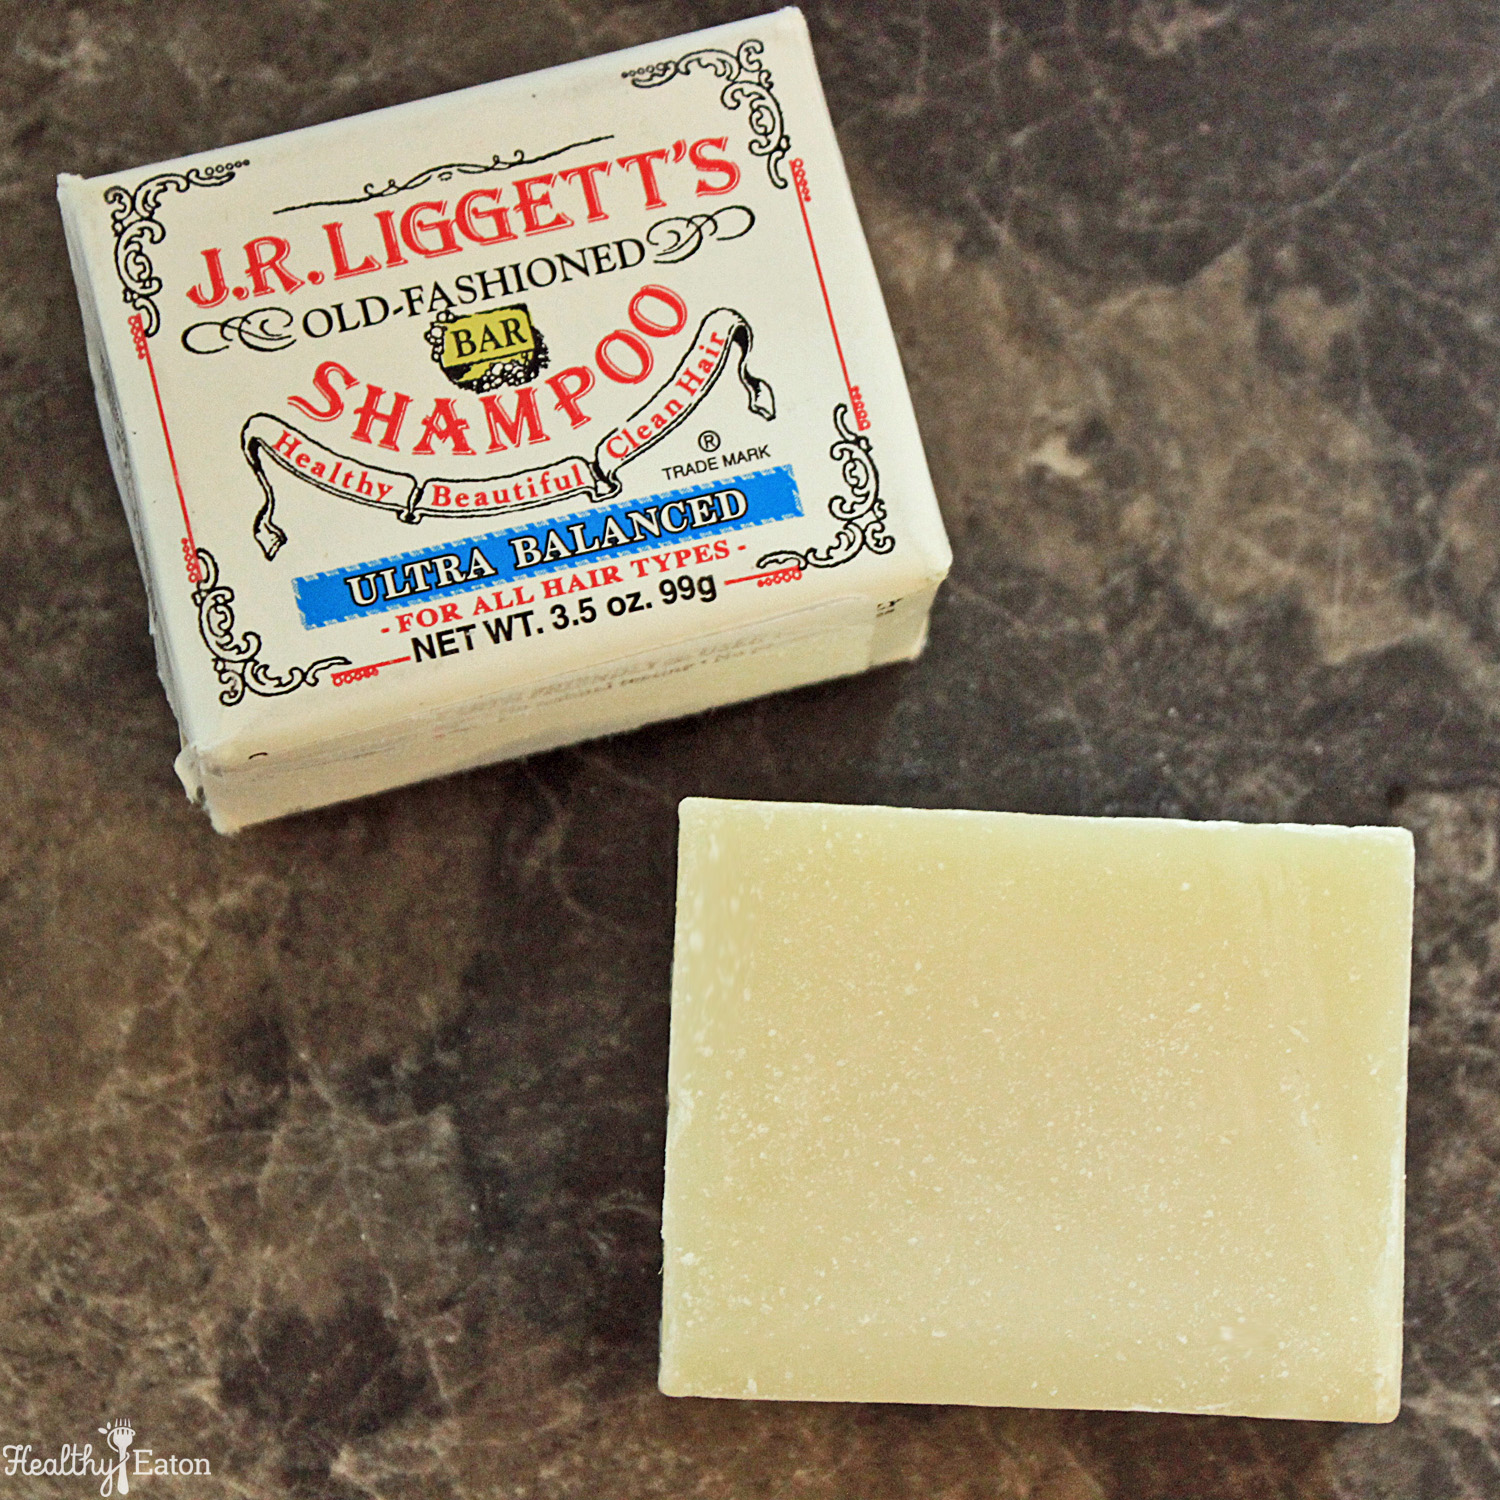 Jr liggett bar shampoo review